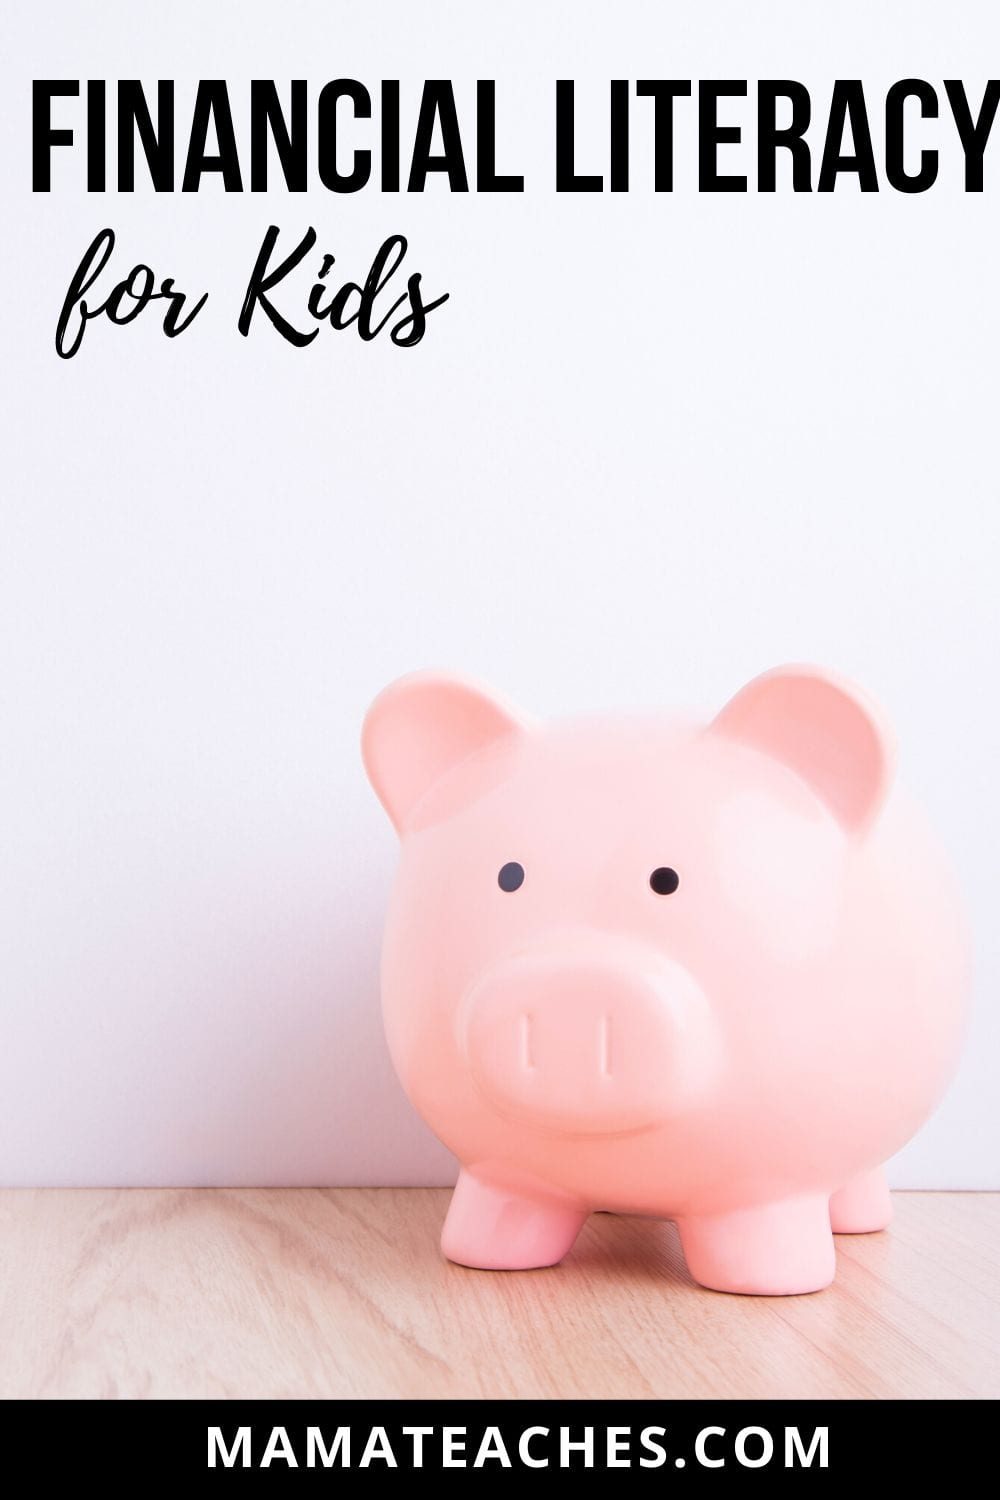 Financial Literacy for Kids - Start teaching kids about money early on!